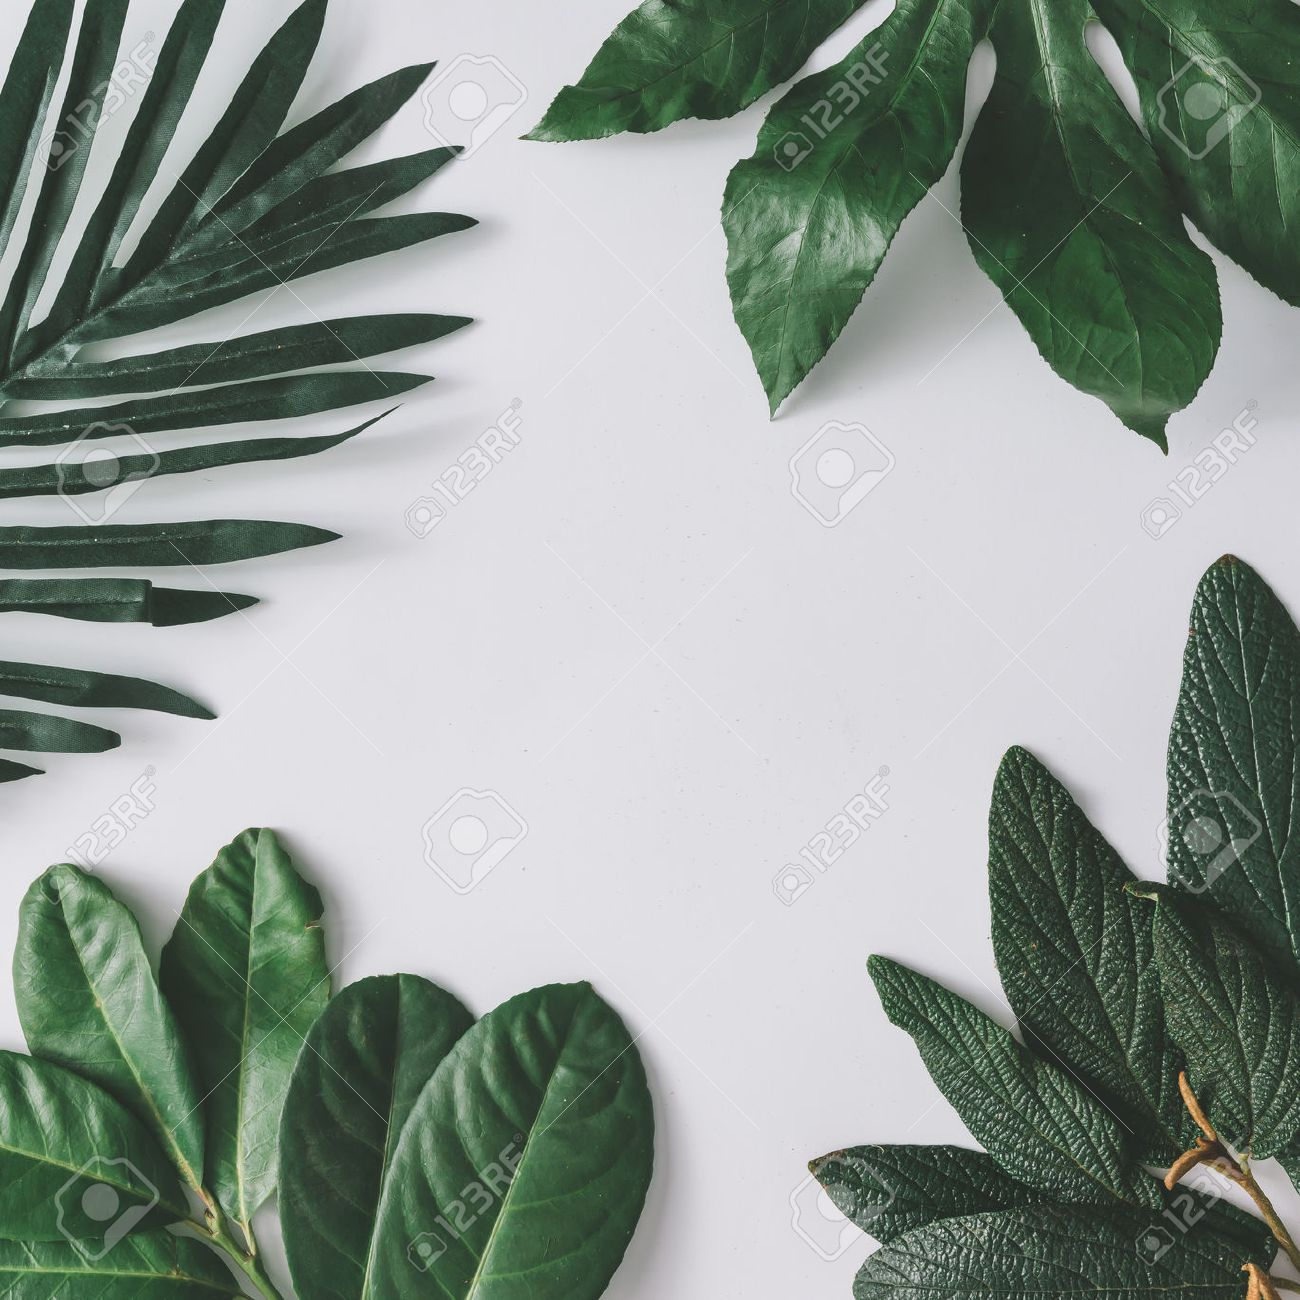 Creative minimal arrangement of leaves on bright white background. Flat lay. Nature concept. - 74236857